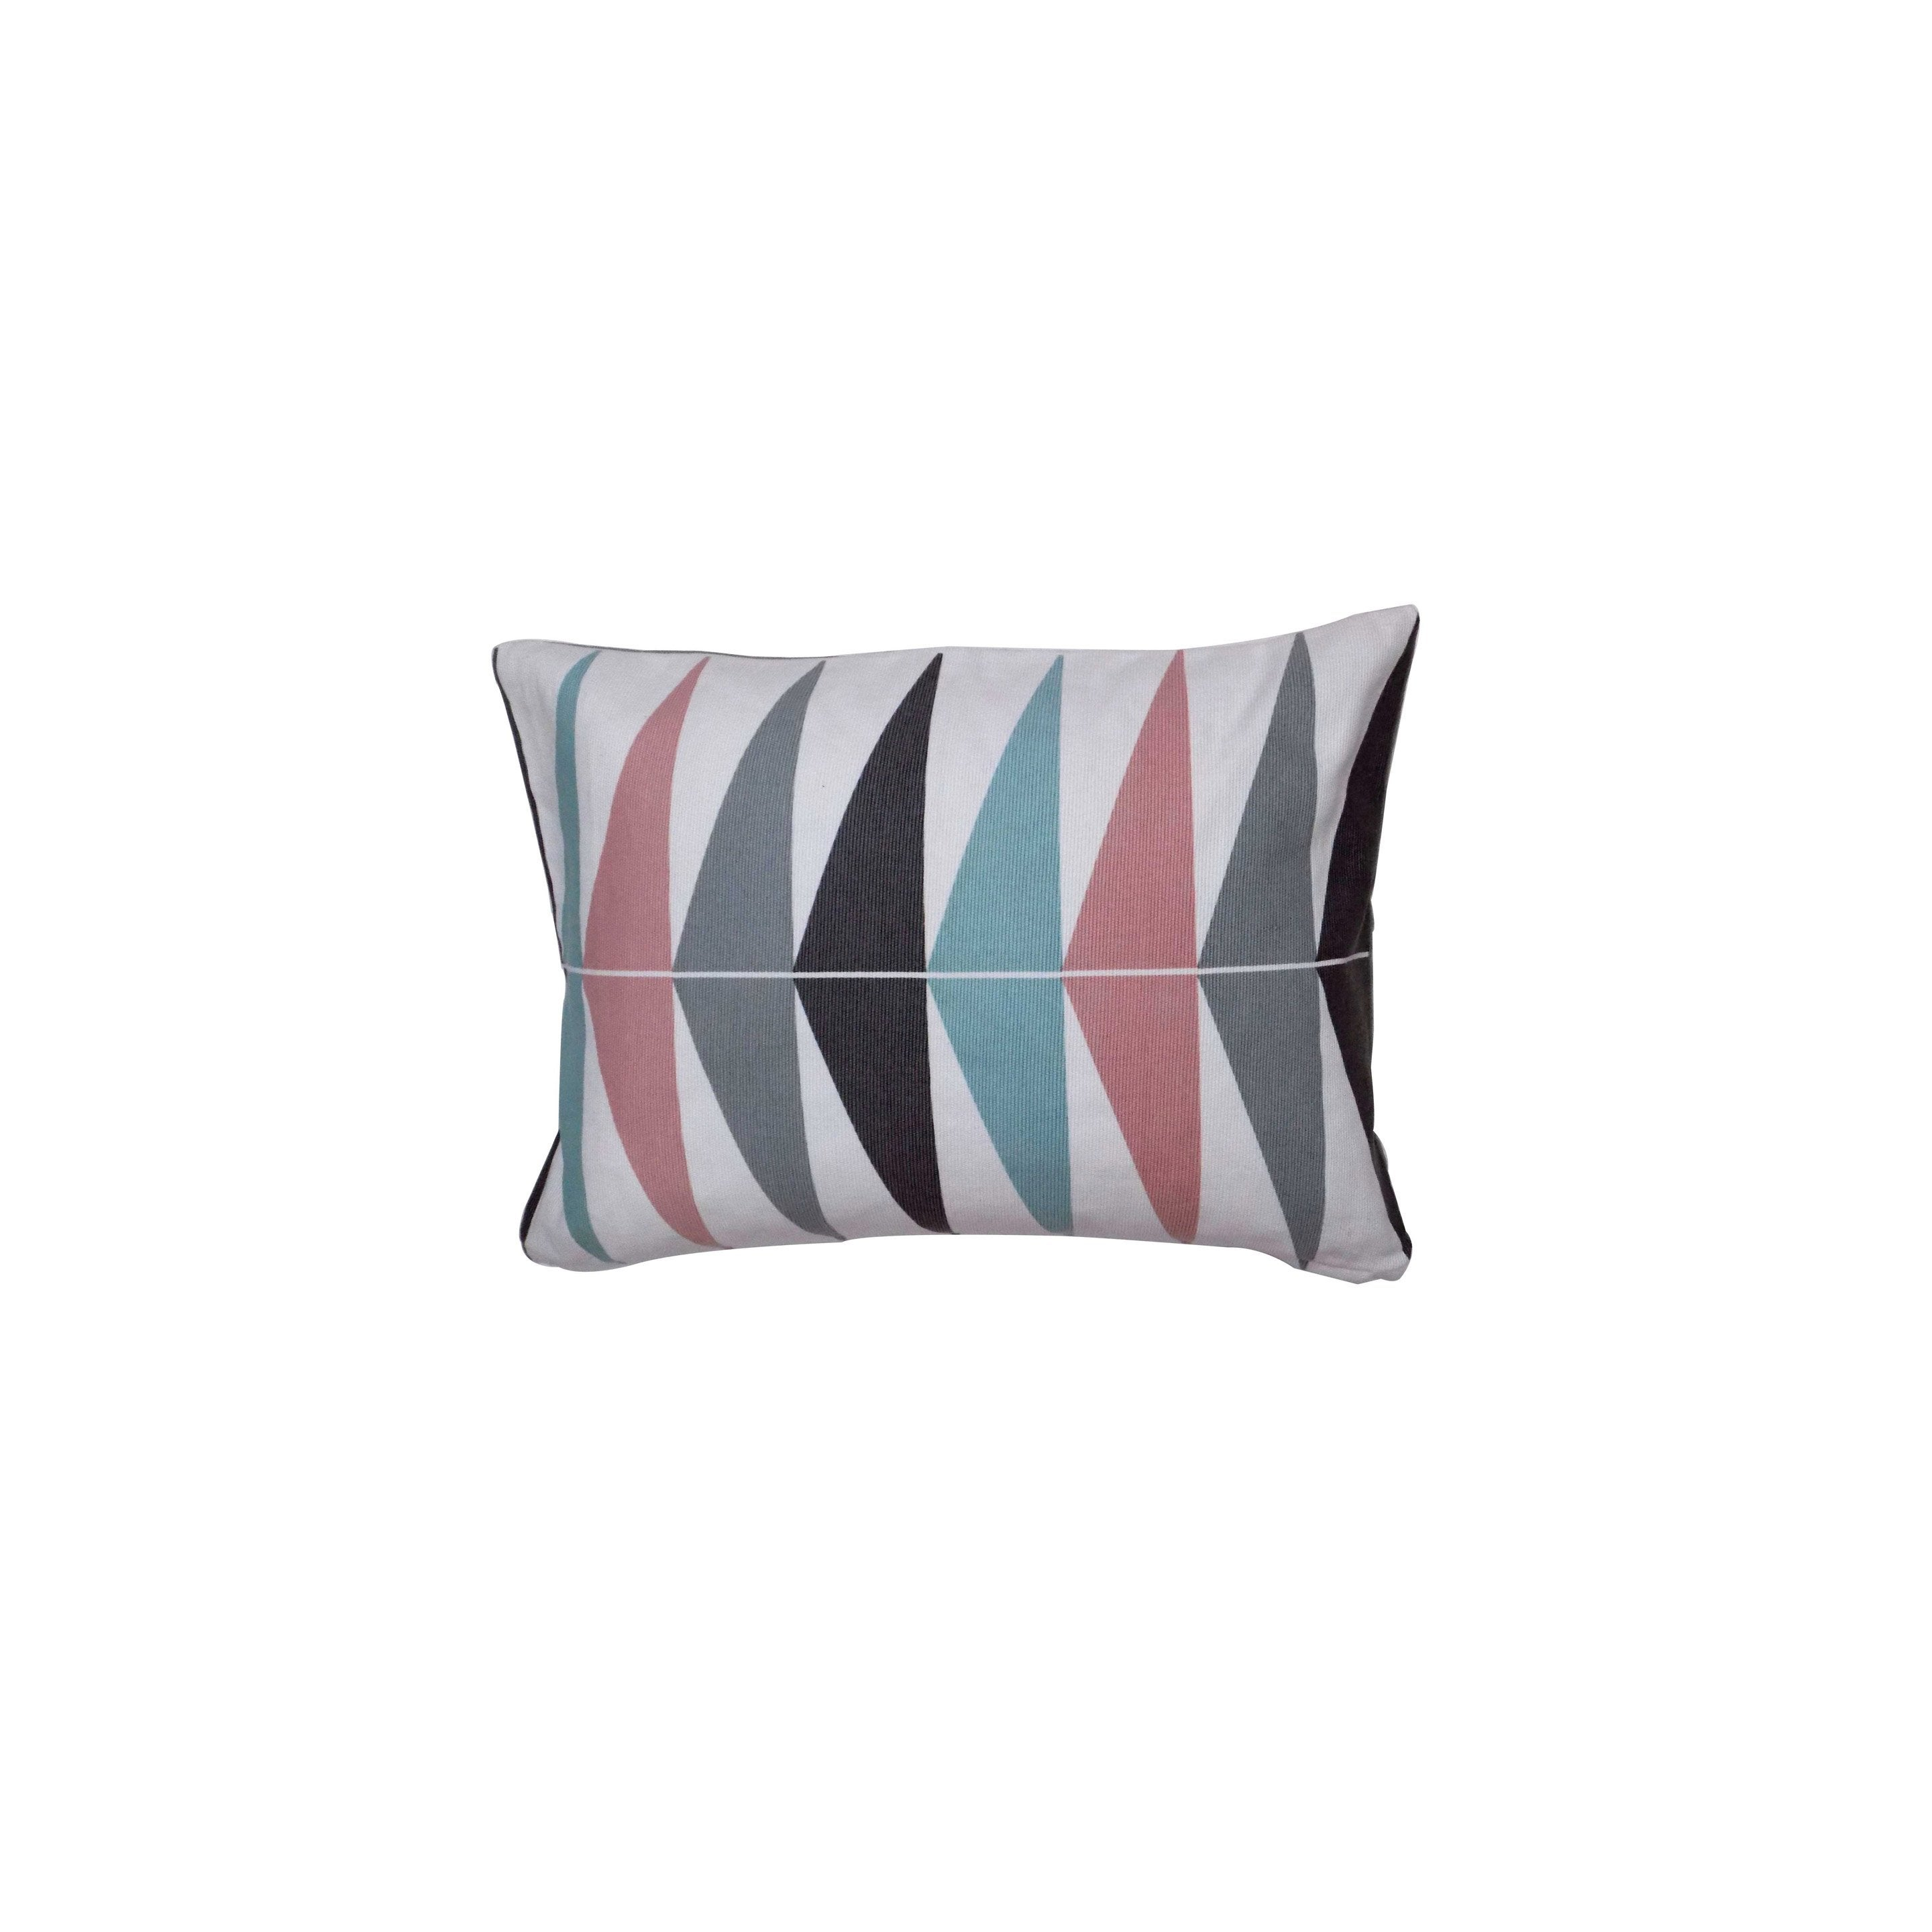 Coussin Triangles, blanc / gris / rose l.50 x H.35 cm